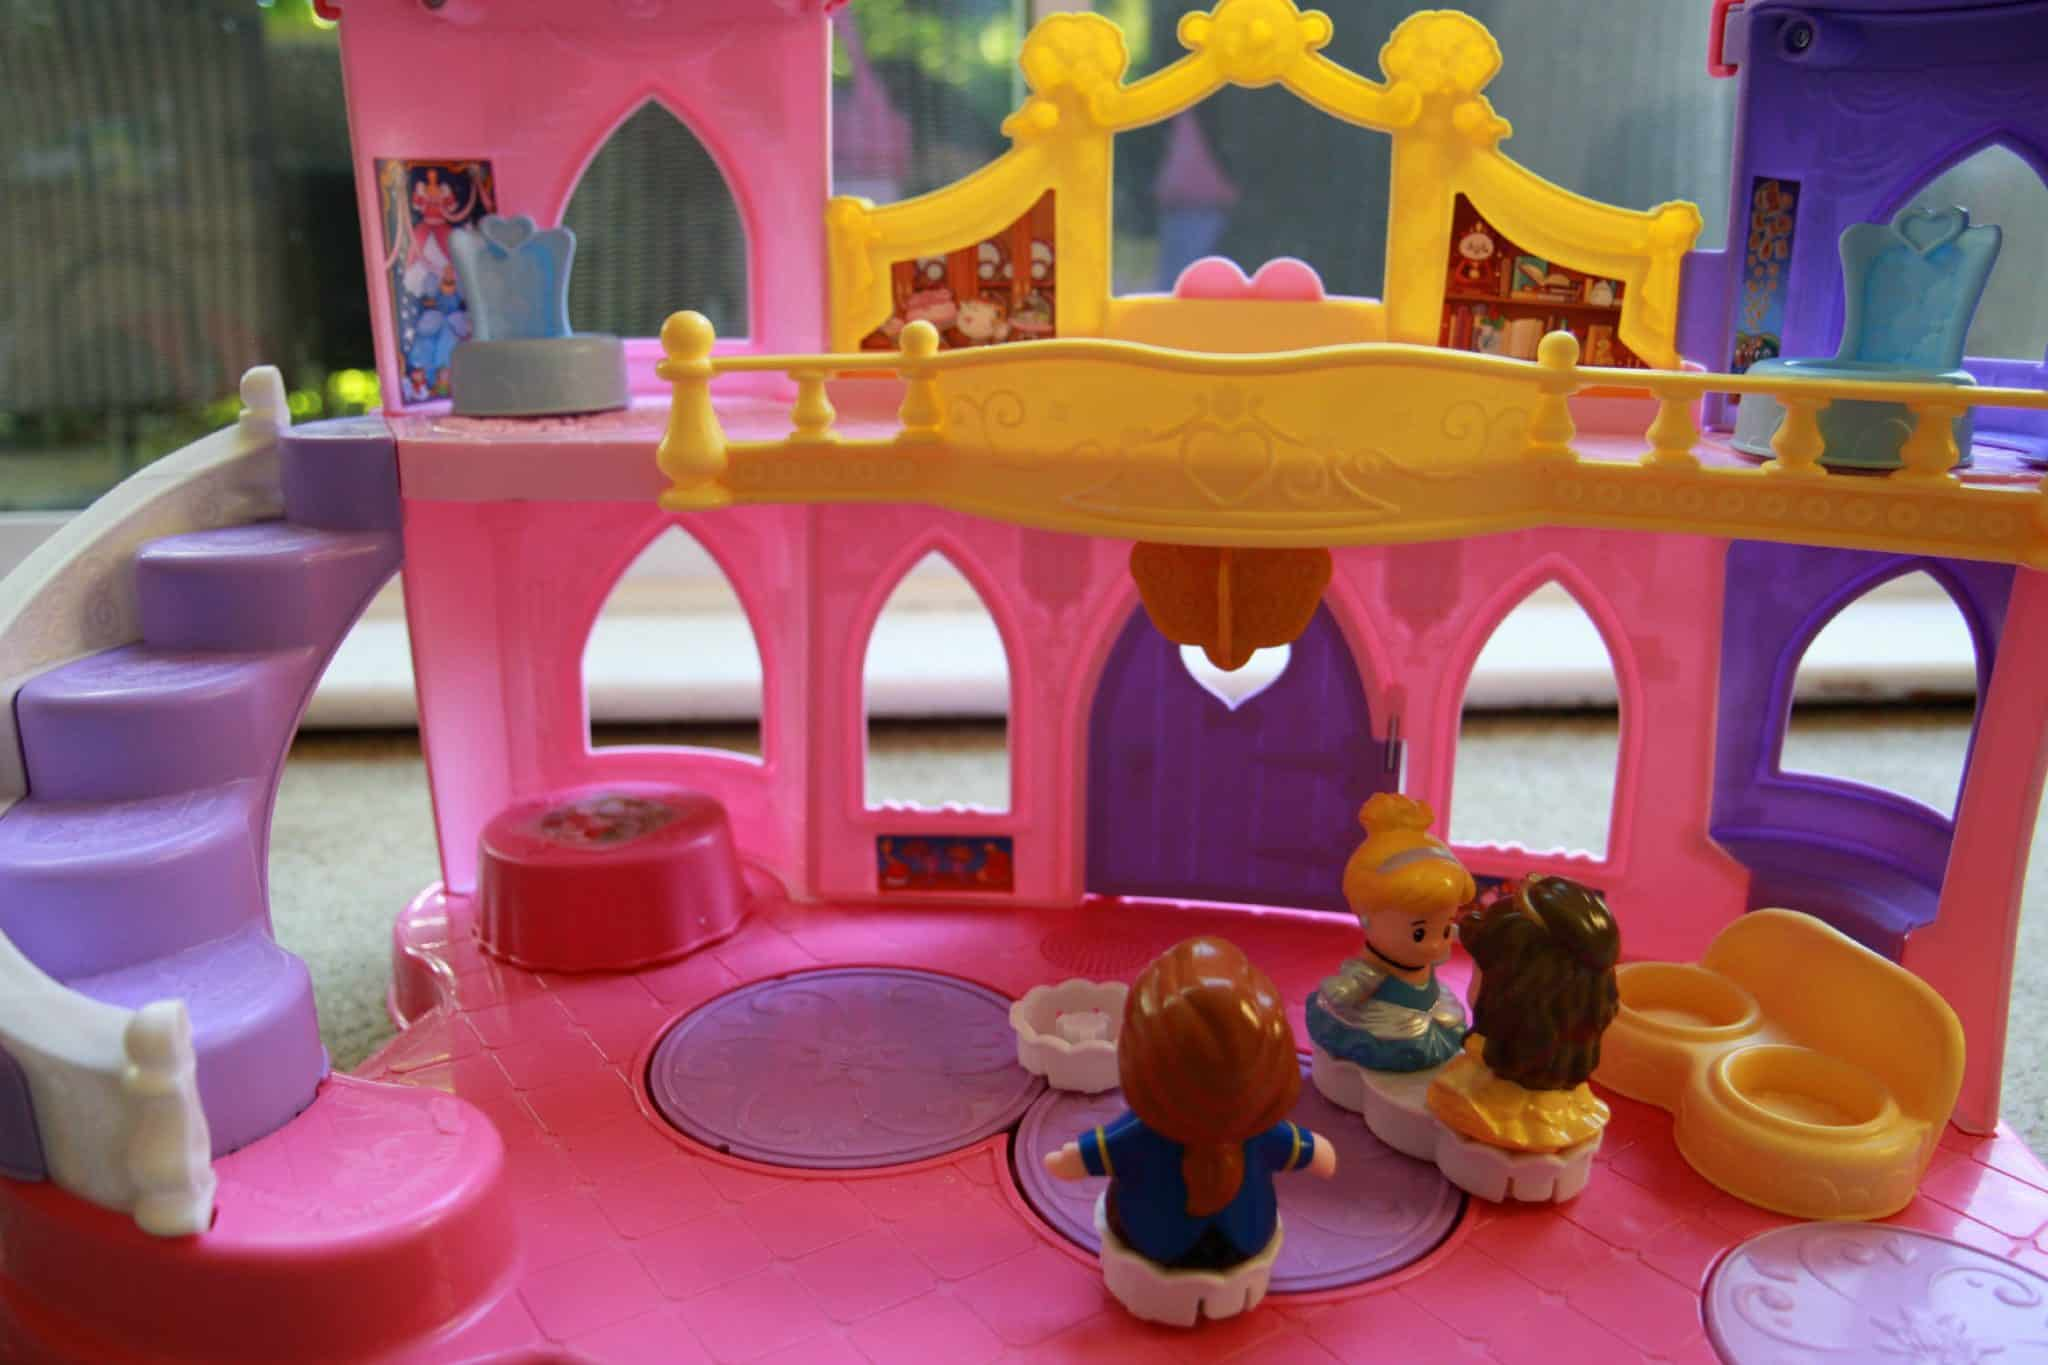 Inside Fisher Price Disney Musical Princess Palace by Little People